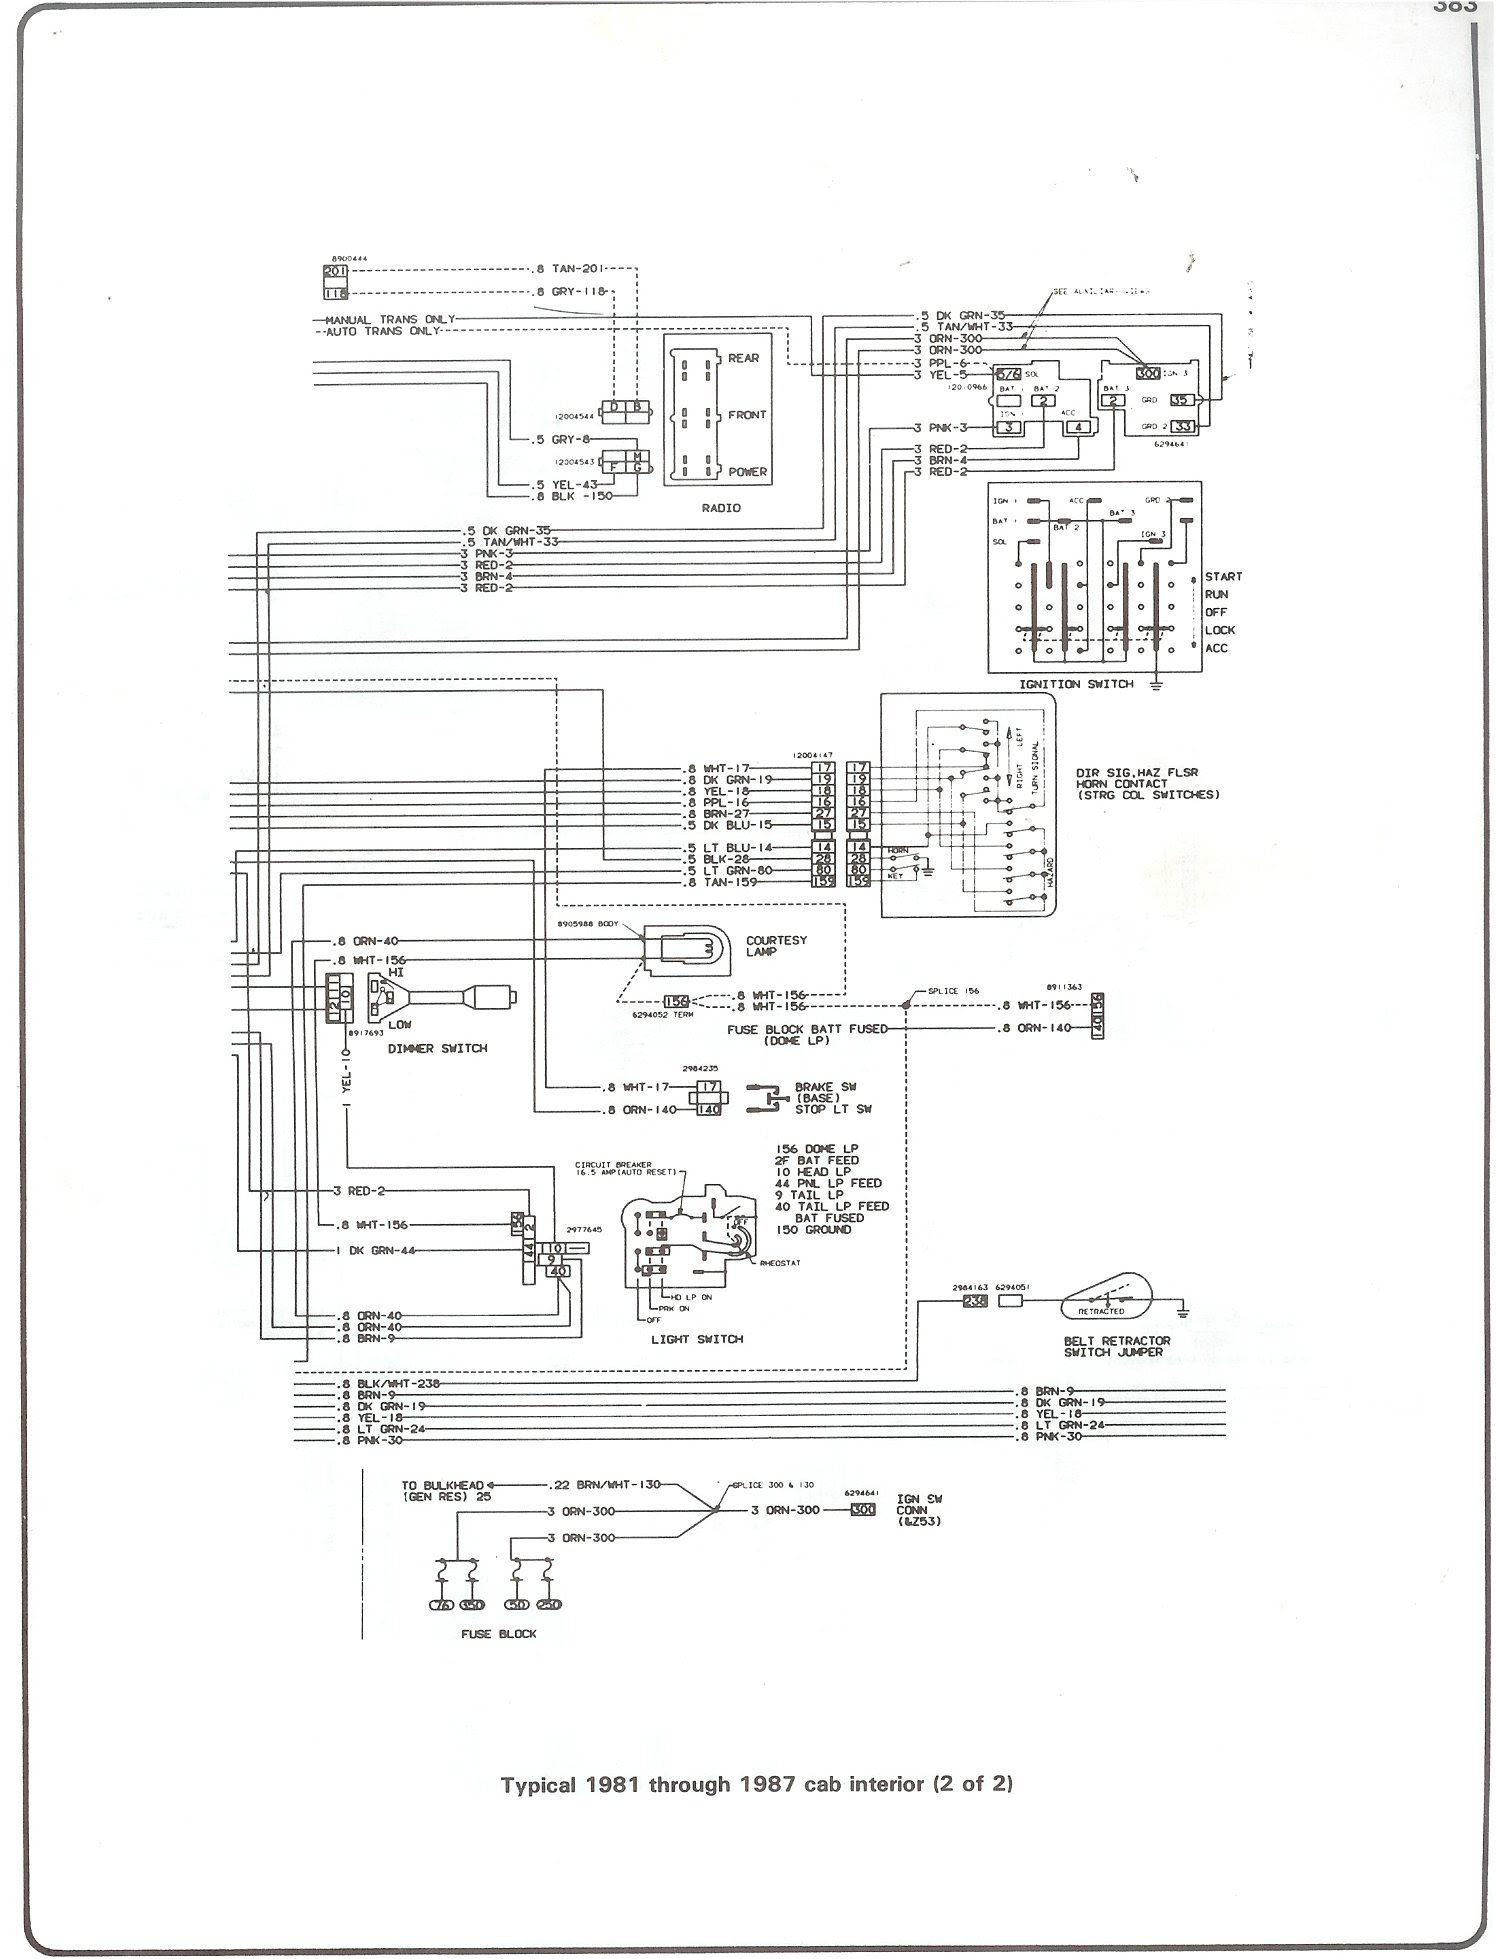 1984 Chevy Truck Ignition Wiring 1993 Nissan Wiring Harness Diagram For Wiring Diagram Schematics